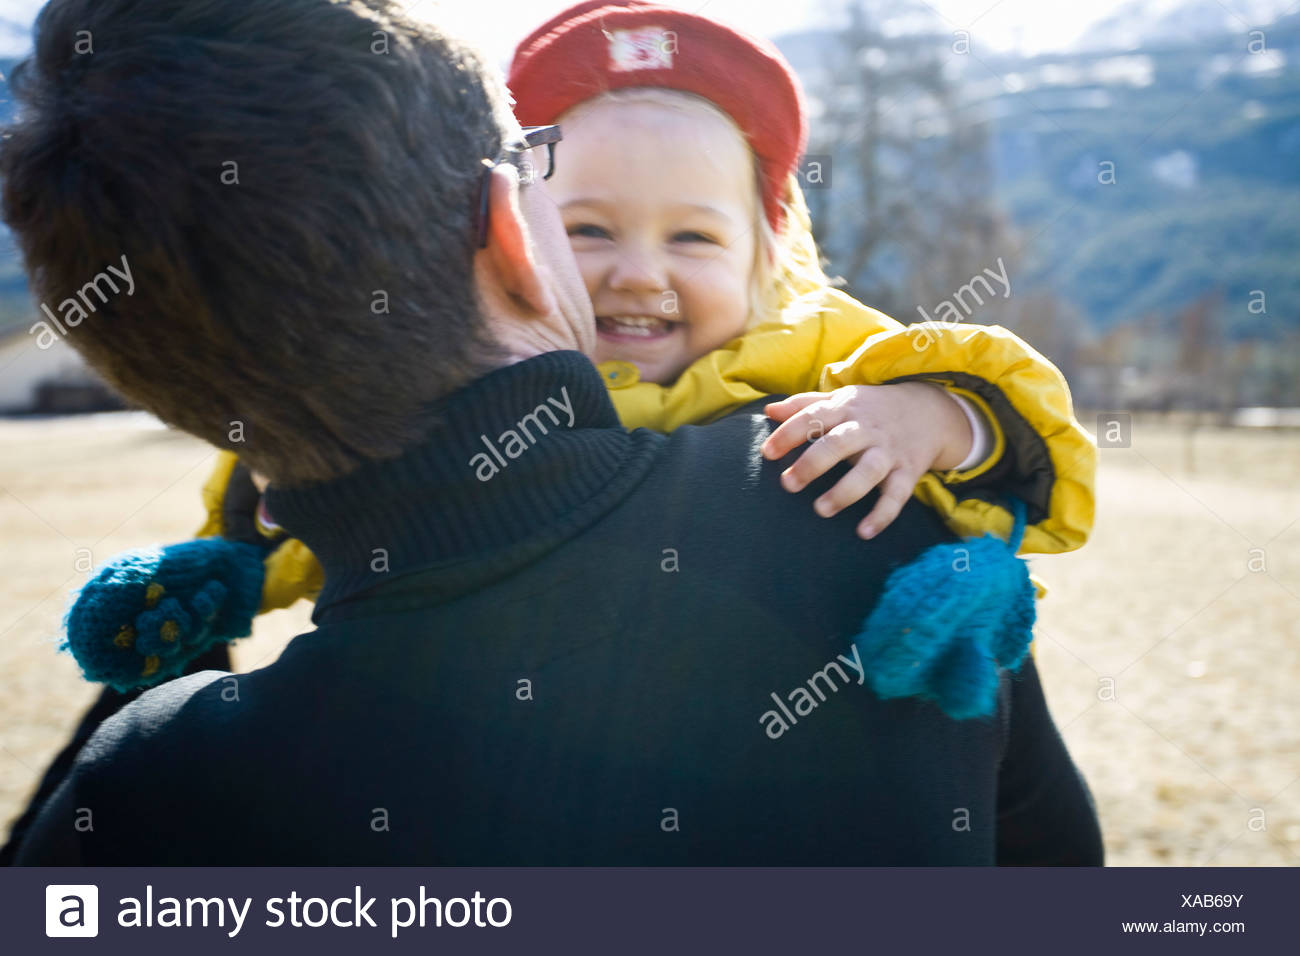 Father carrying baby girl, baby girl smiling - Stock Image